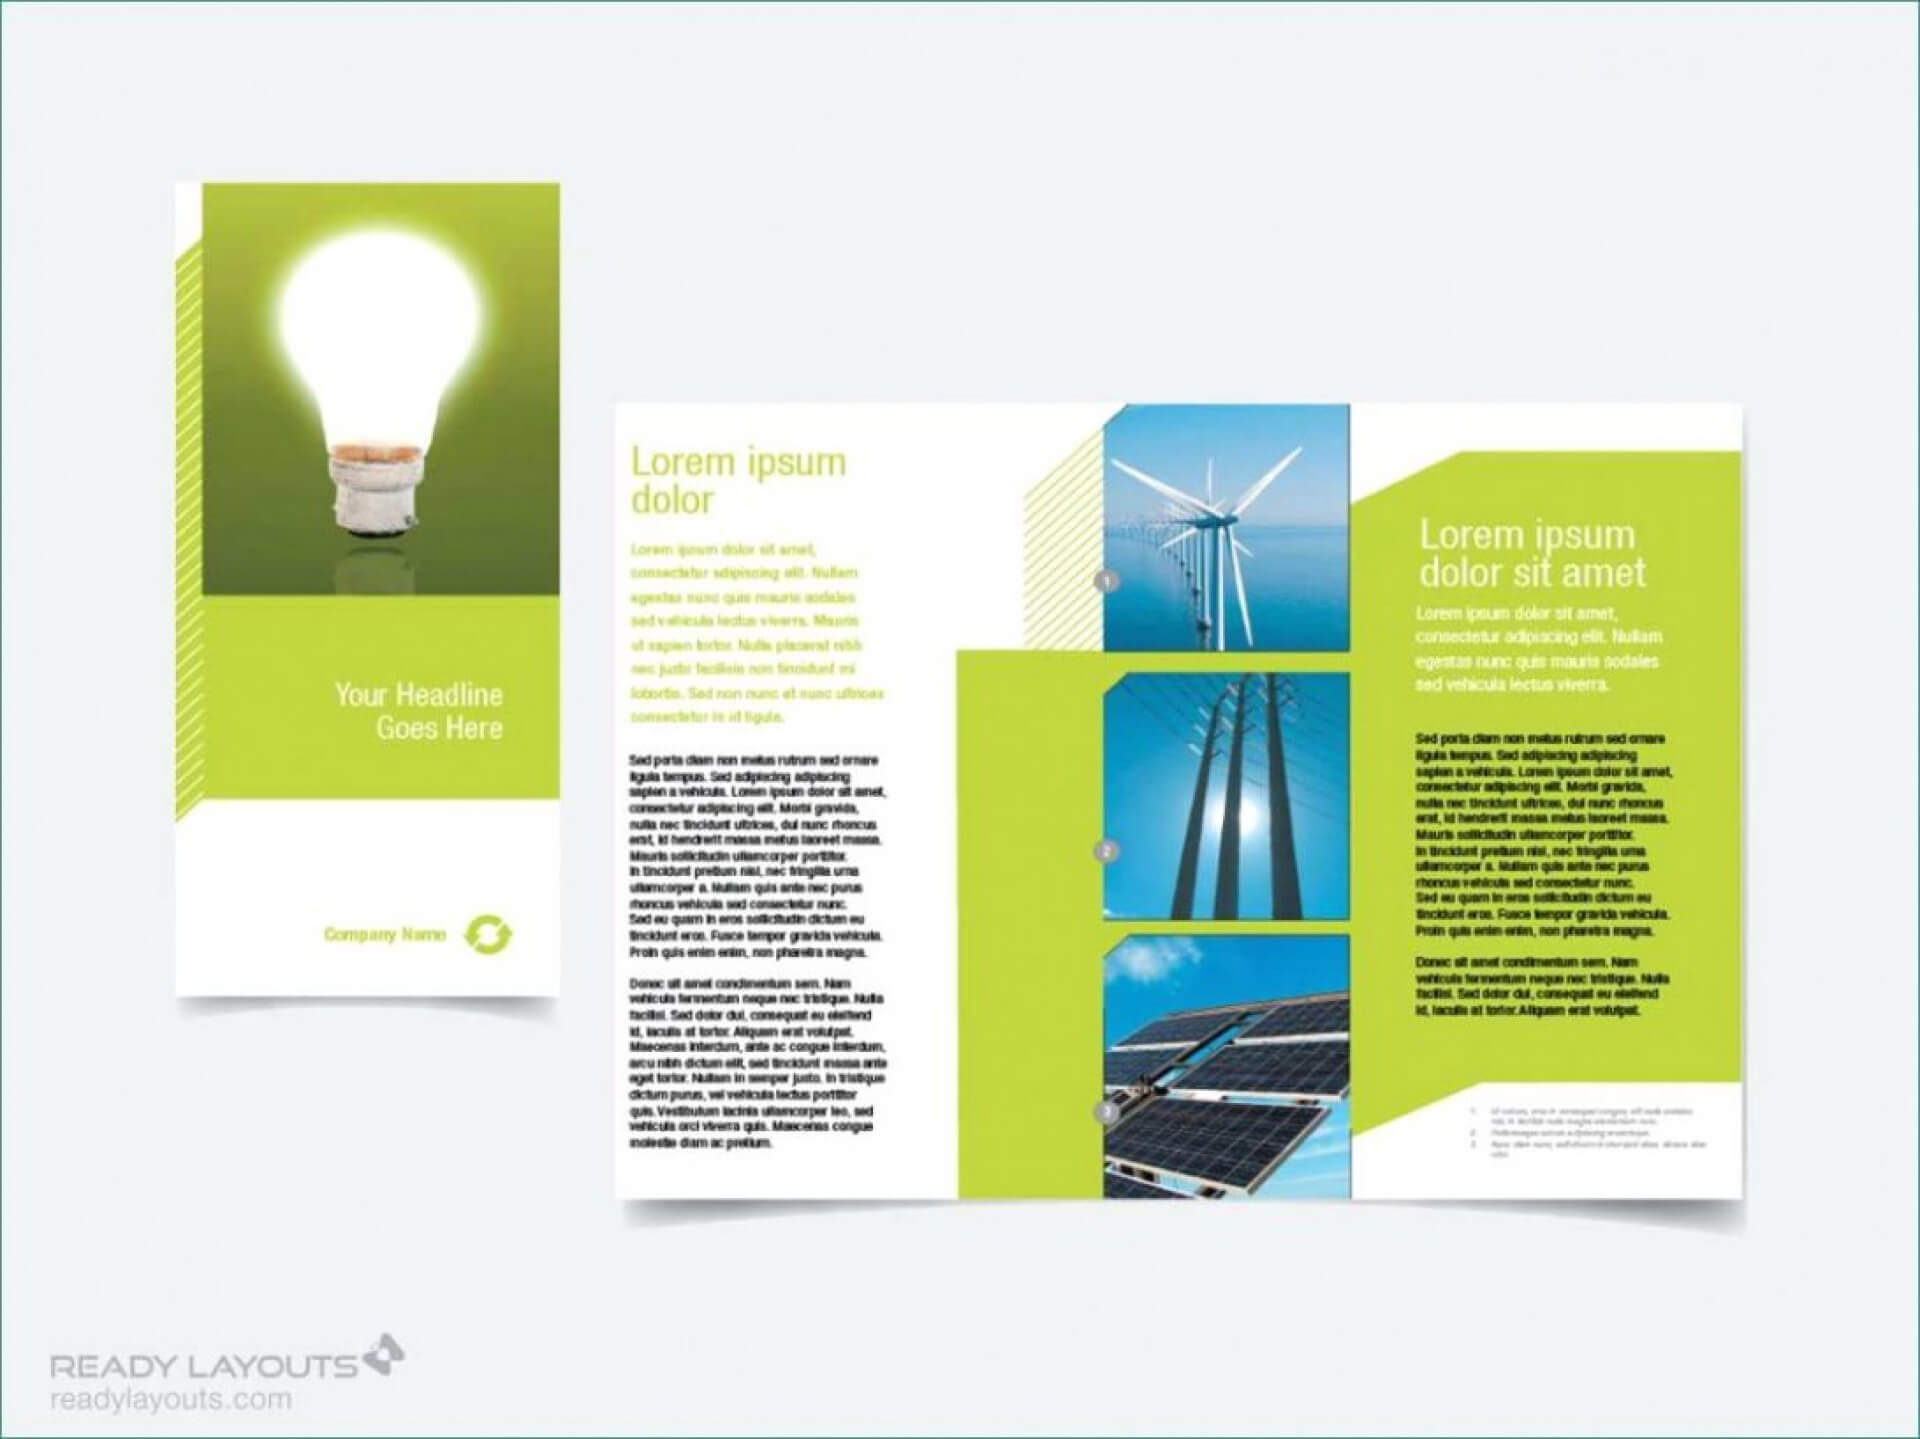 014 Travel Brochure Templates Free Download For Word Pertaining To Word Travel Brochure Template